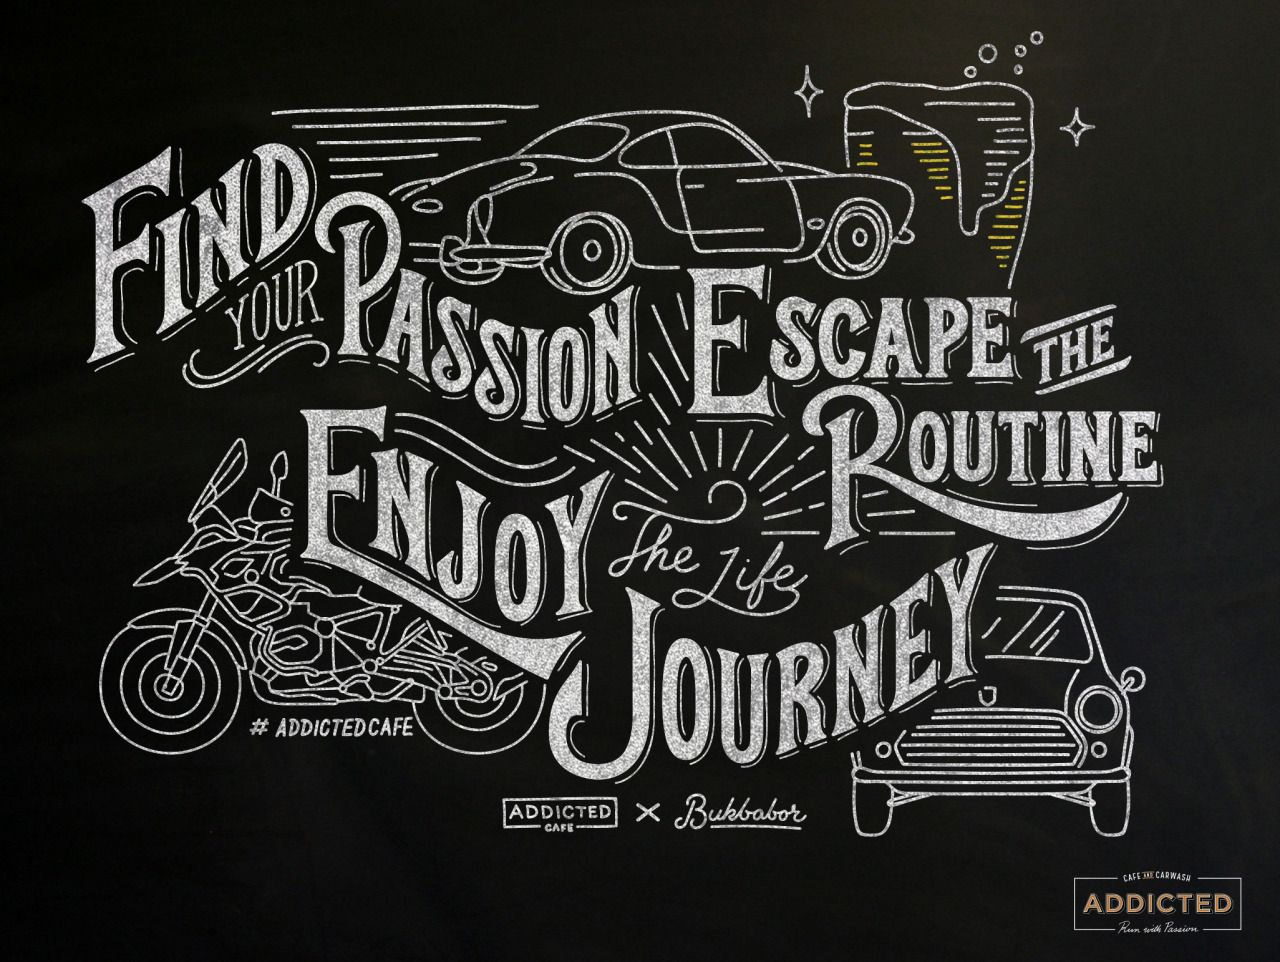 Find Your Passion Escape The Routine Enjoy The Life